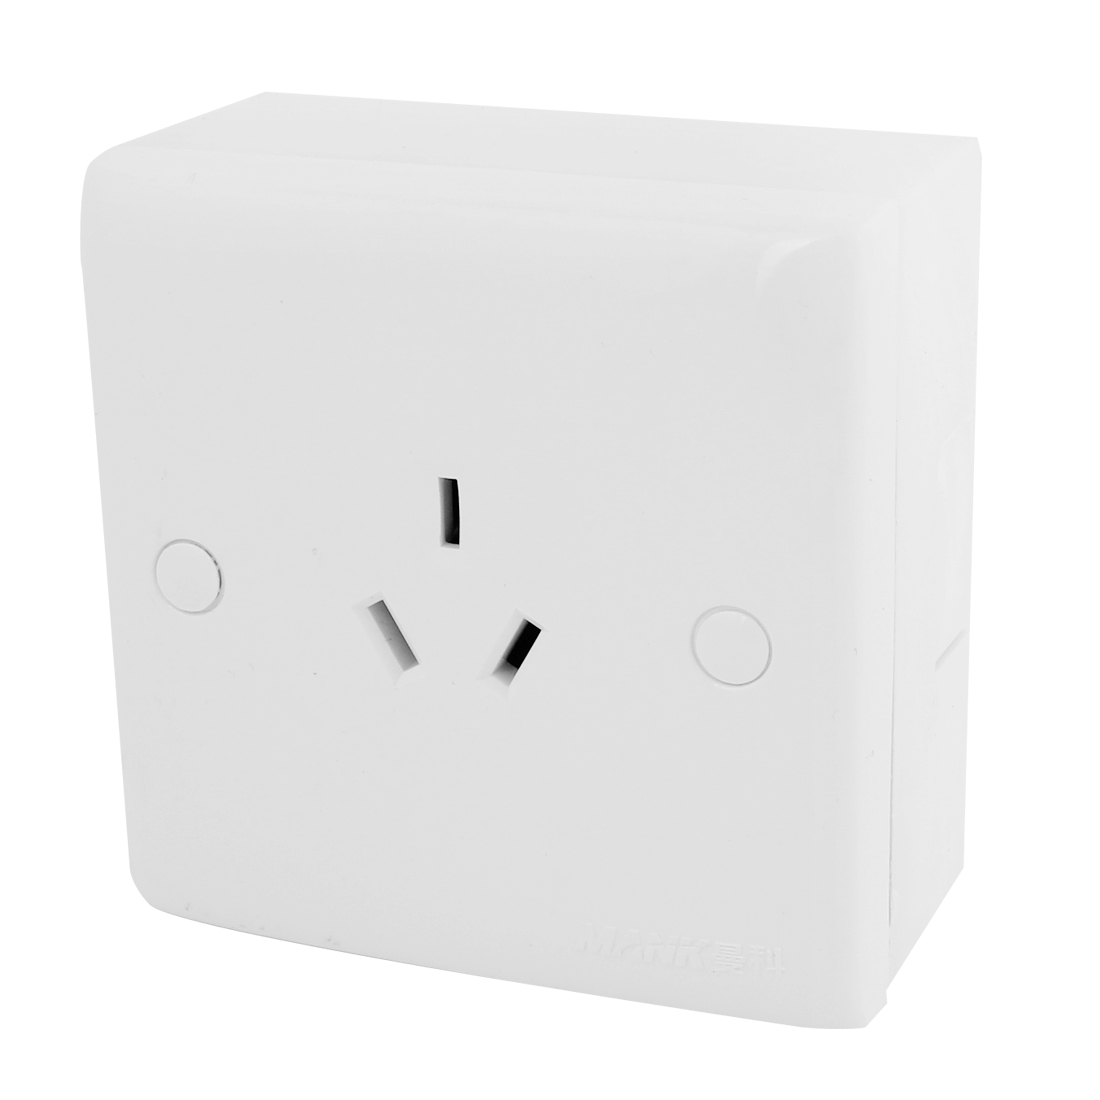 Home 10A 250VAC 3 Pin AU Outlet Wall Mounting Socket w Screws